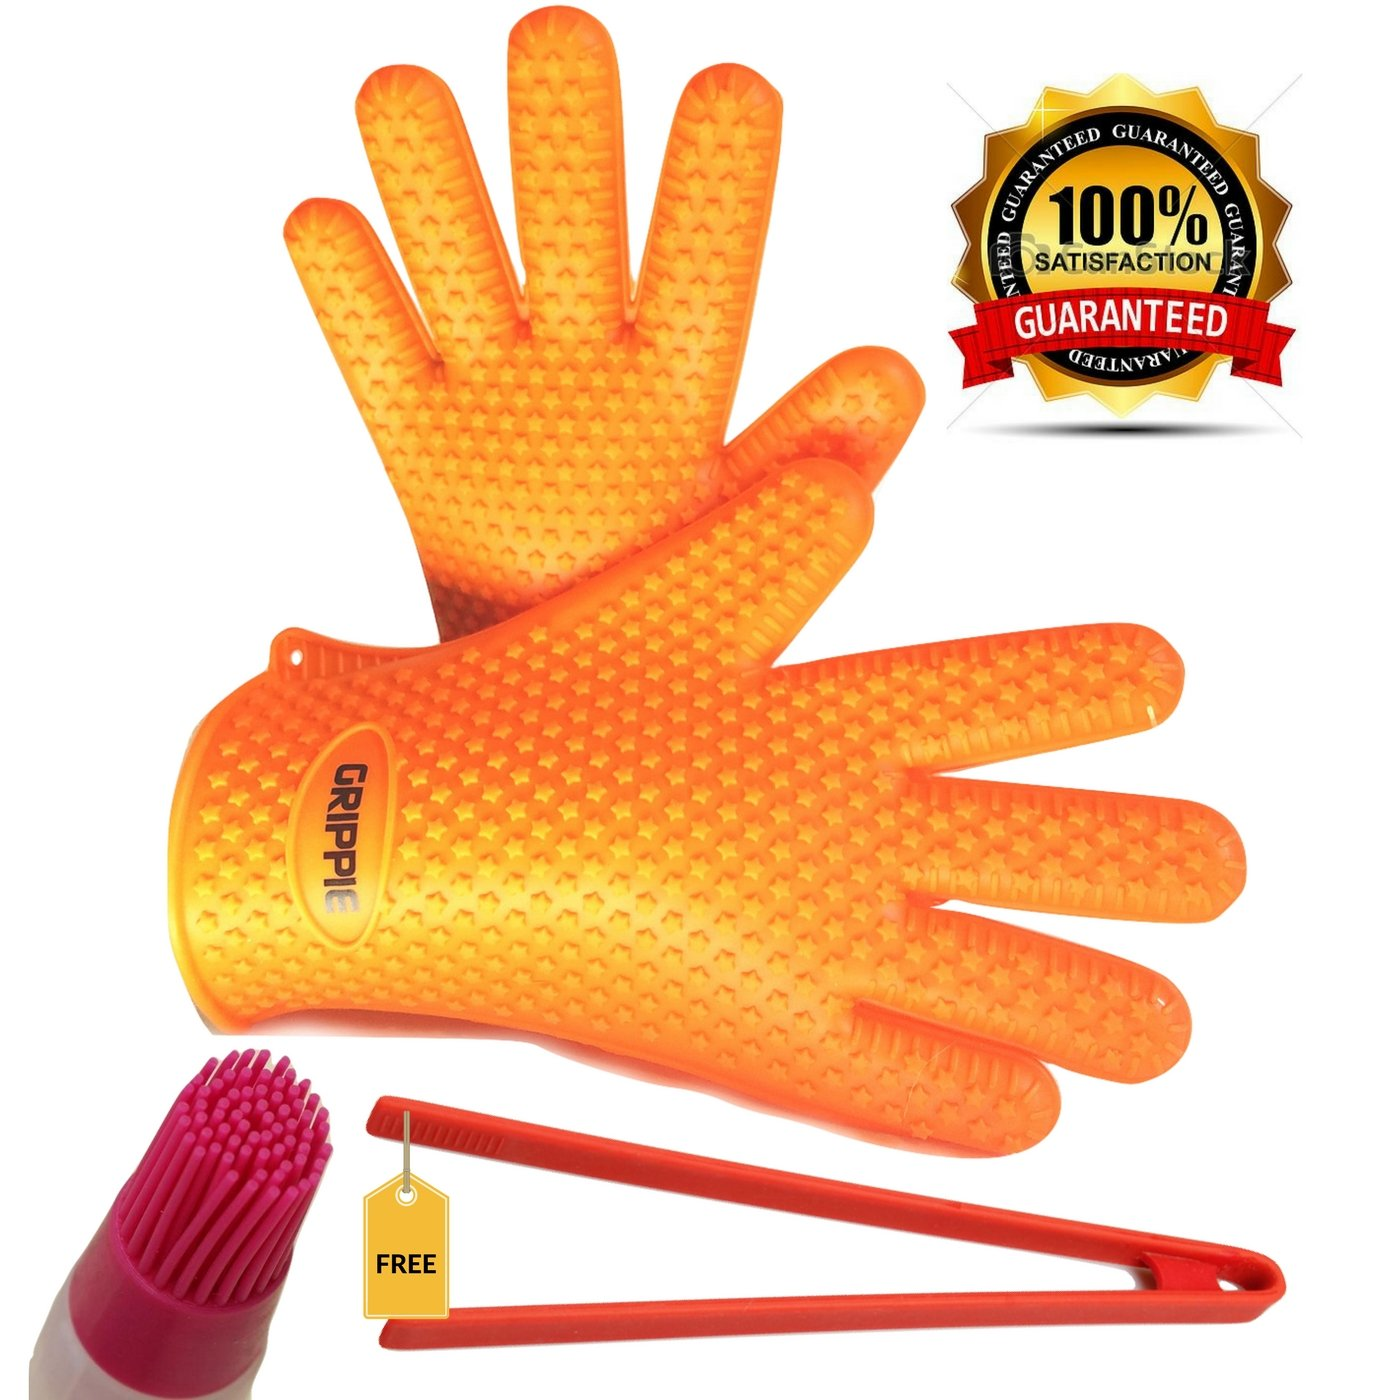 BBQ, Grilling & Oven Silicone Heat Resistant Cooking Gloves With FREE TONGS and BASTING BRUSH By Grippie–Premium Quality-Maximum Protection & Comfort–Lightweight & Dishwasher Safe–Blue&Orange